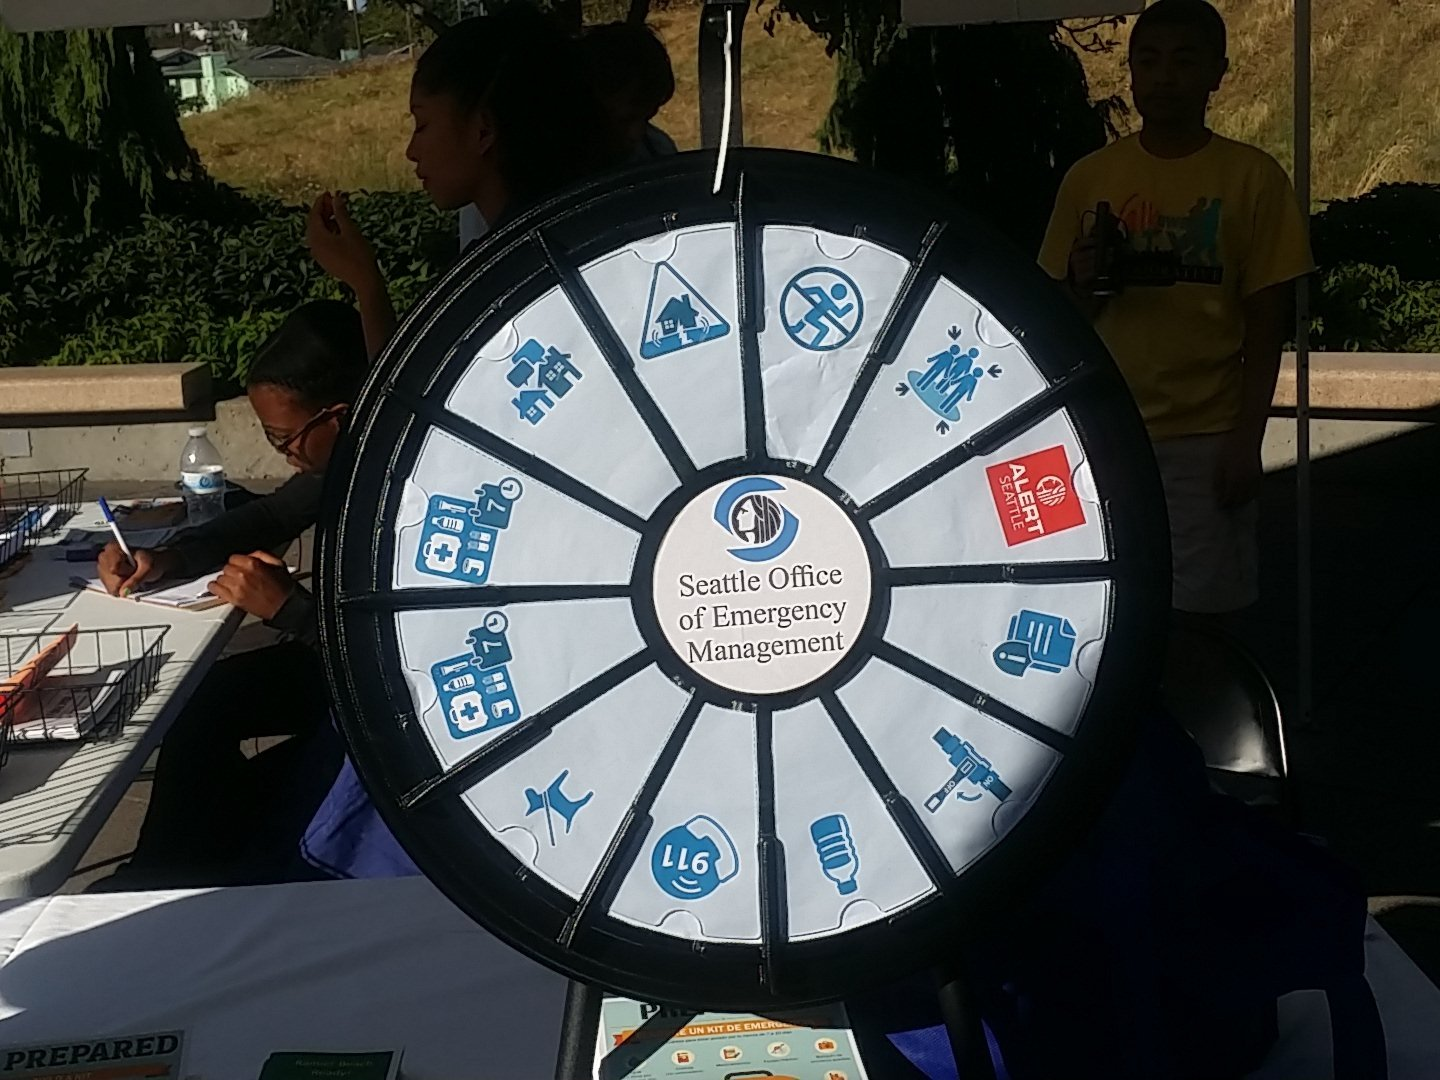 A fun trivia wheel for if a natural disaster happens. It's good to know when to be prepared 👍 https://t.co/wNp725rjY4